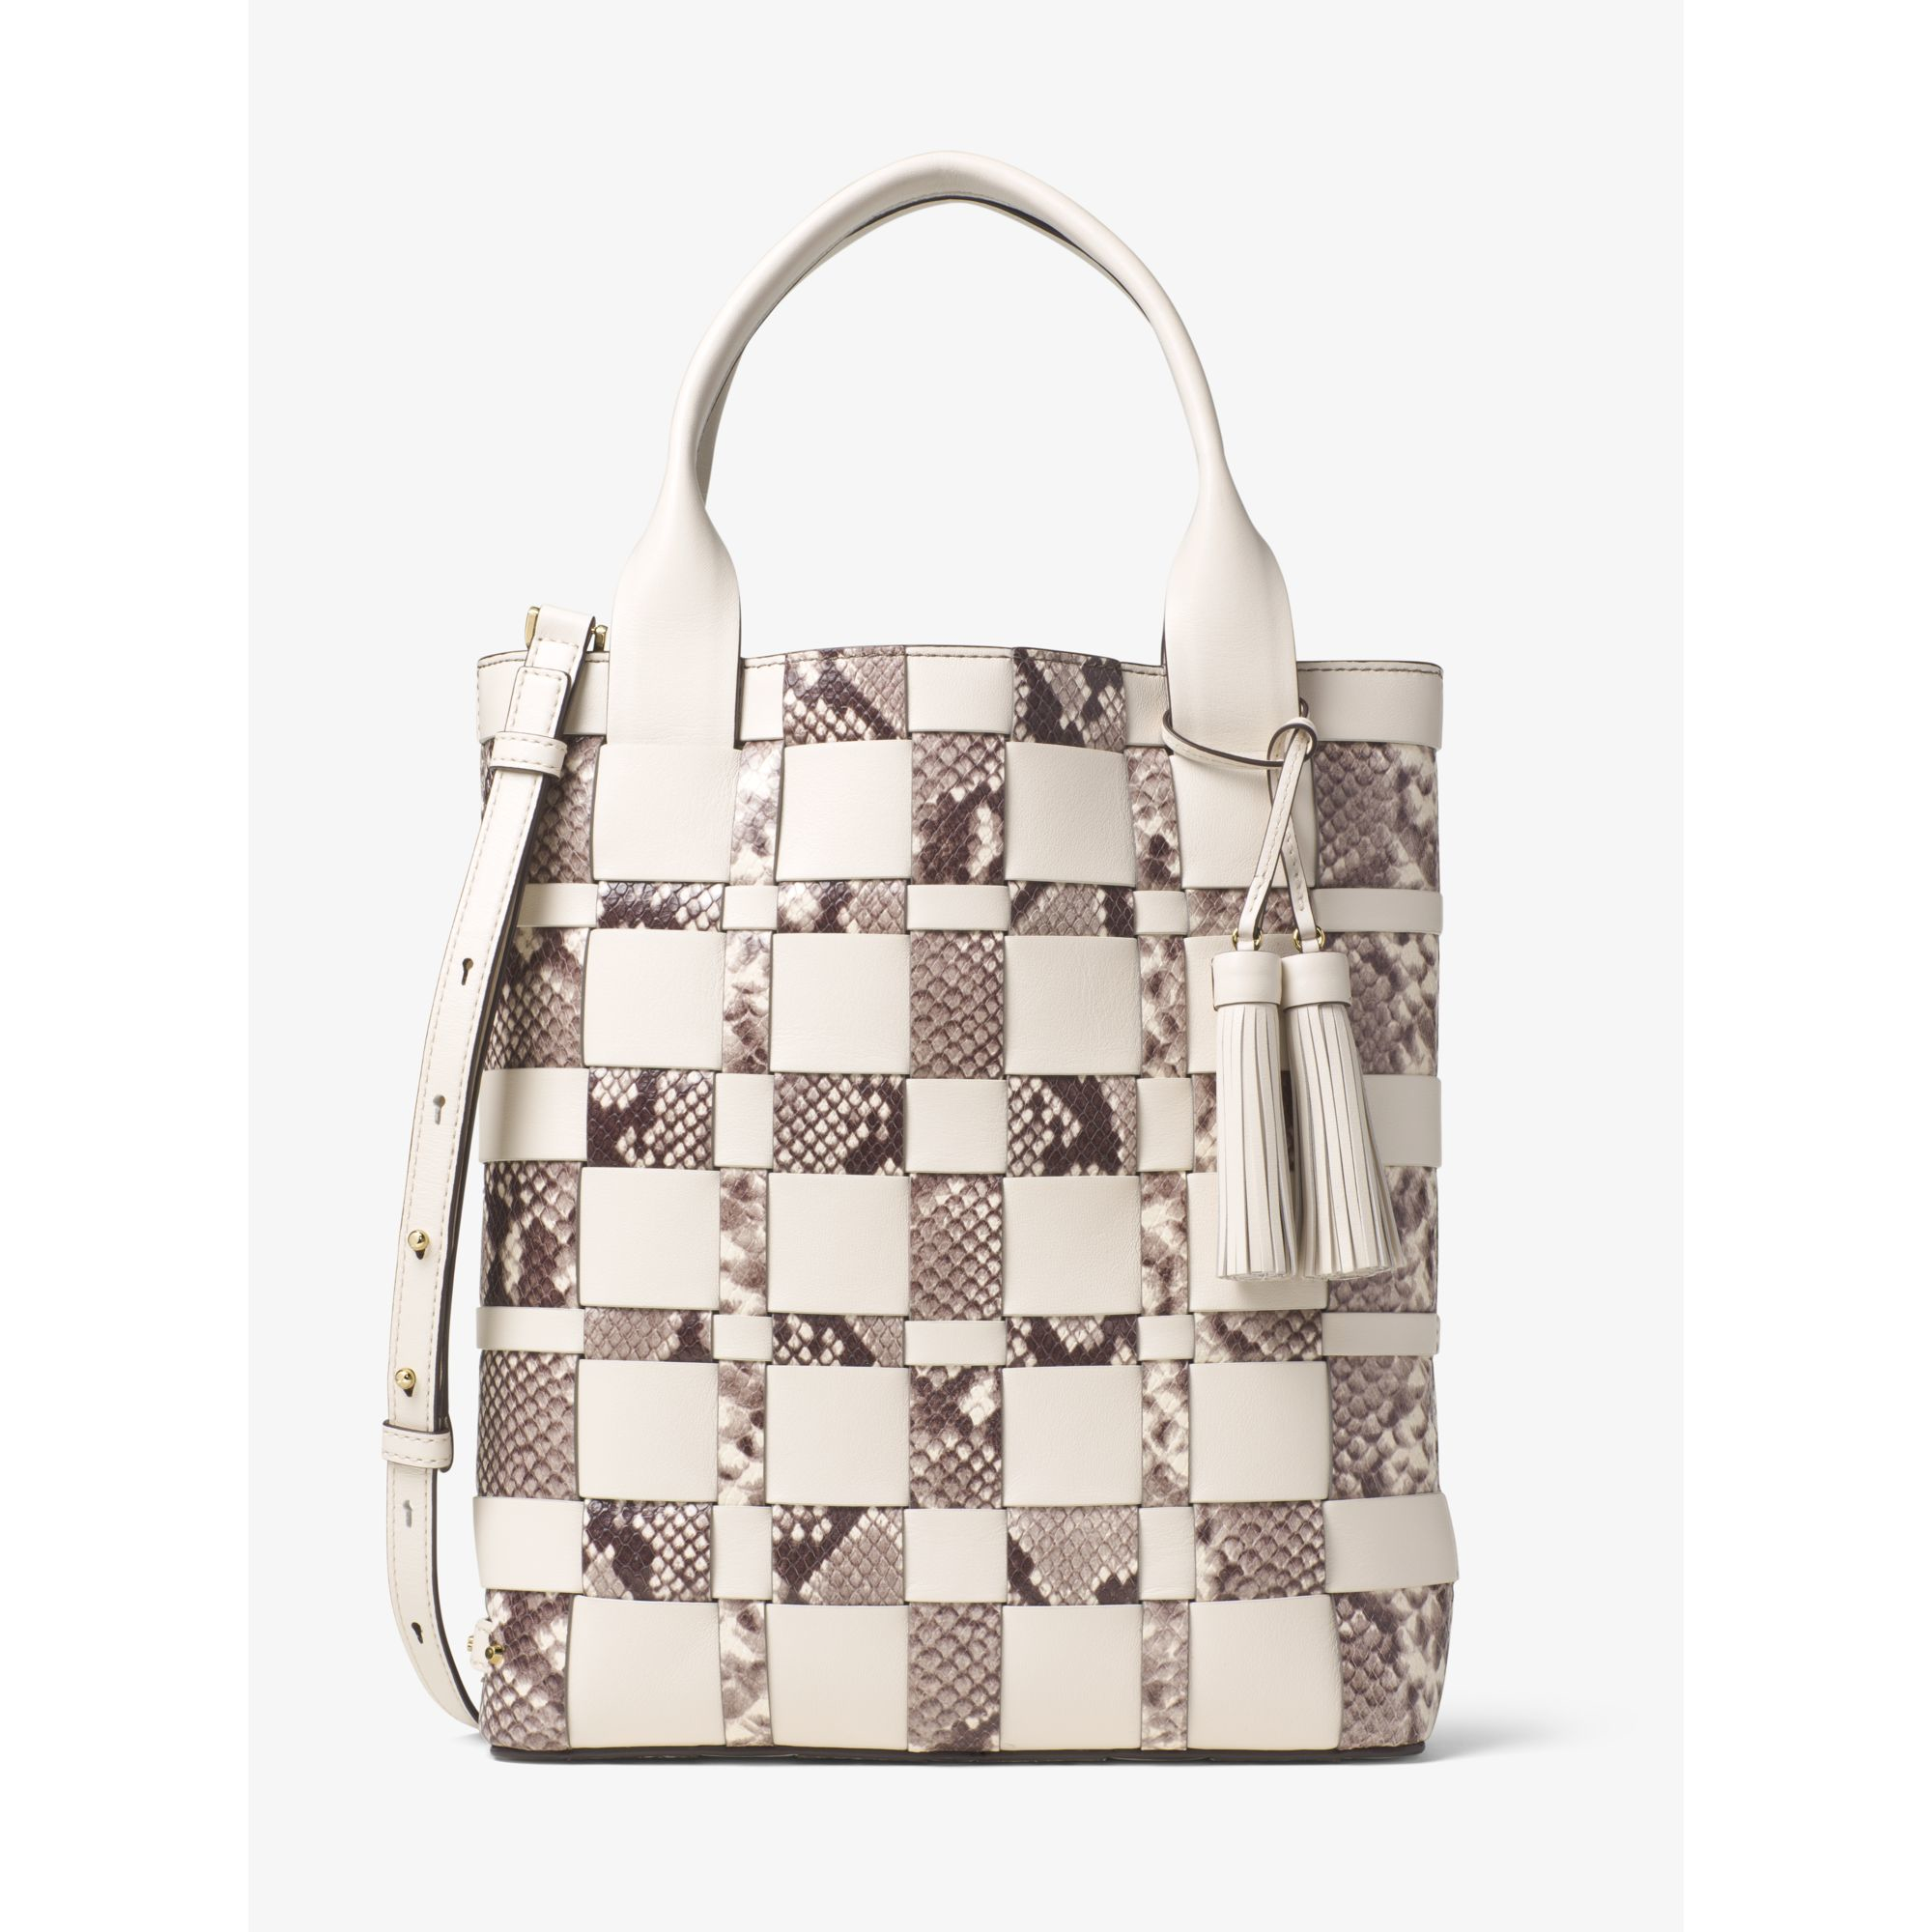 d8bd6e81c52f Lyst - Michael Kors Vivian Large Woven Leather Tote in Natural